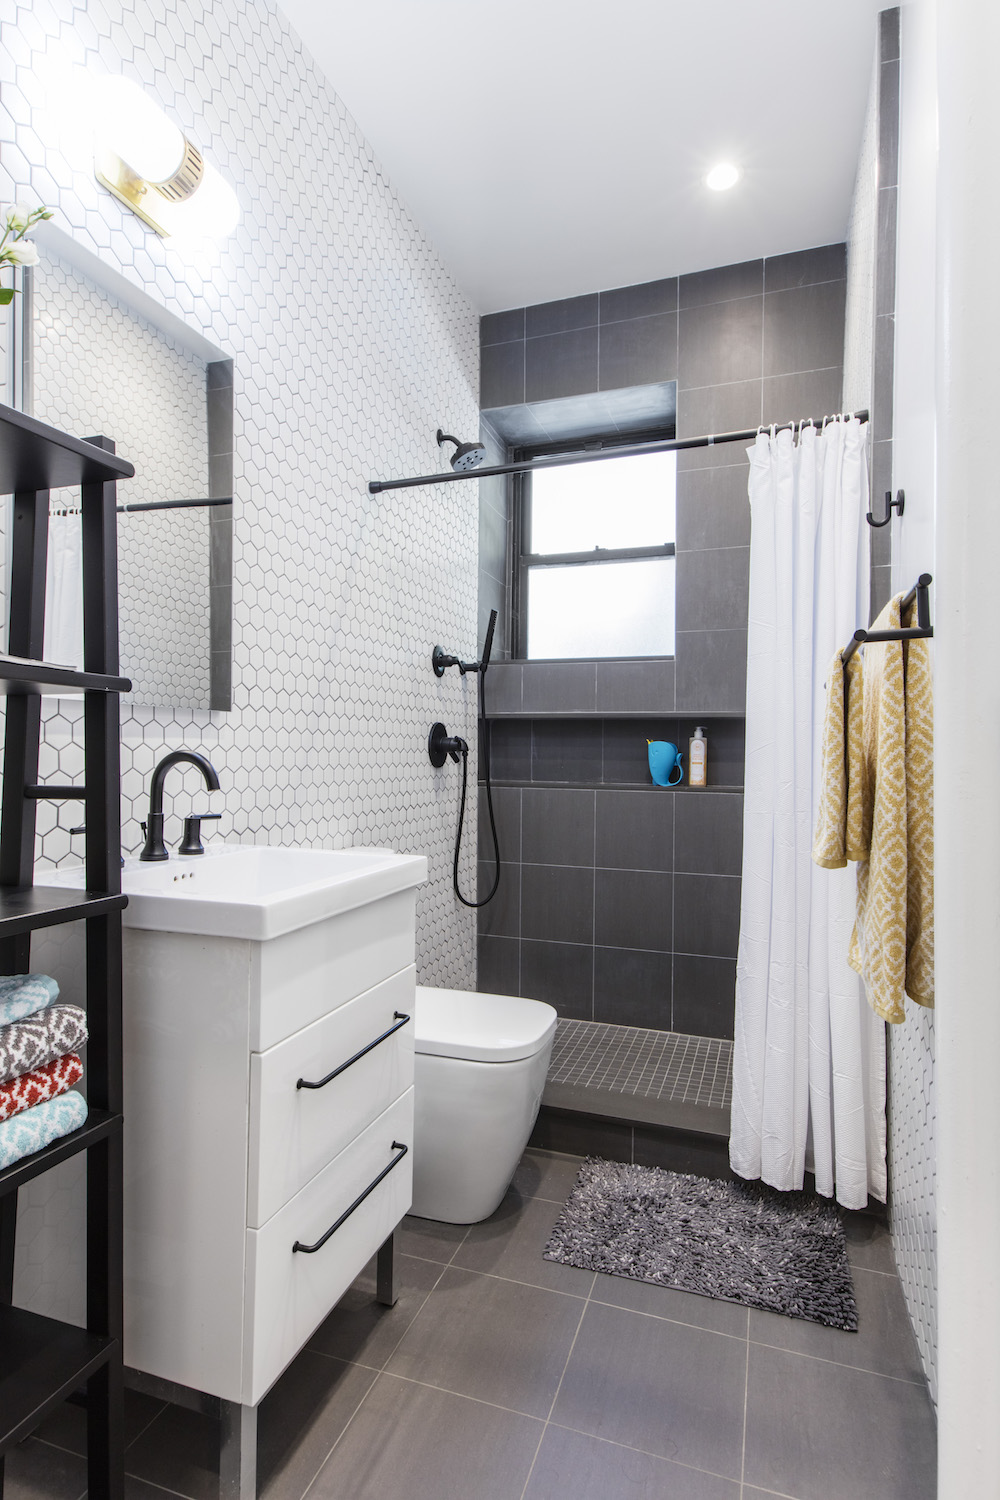 Bathroom with white tile walls, walk-in shower with gray tile and white bathroom vanity